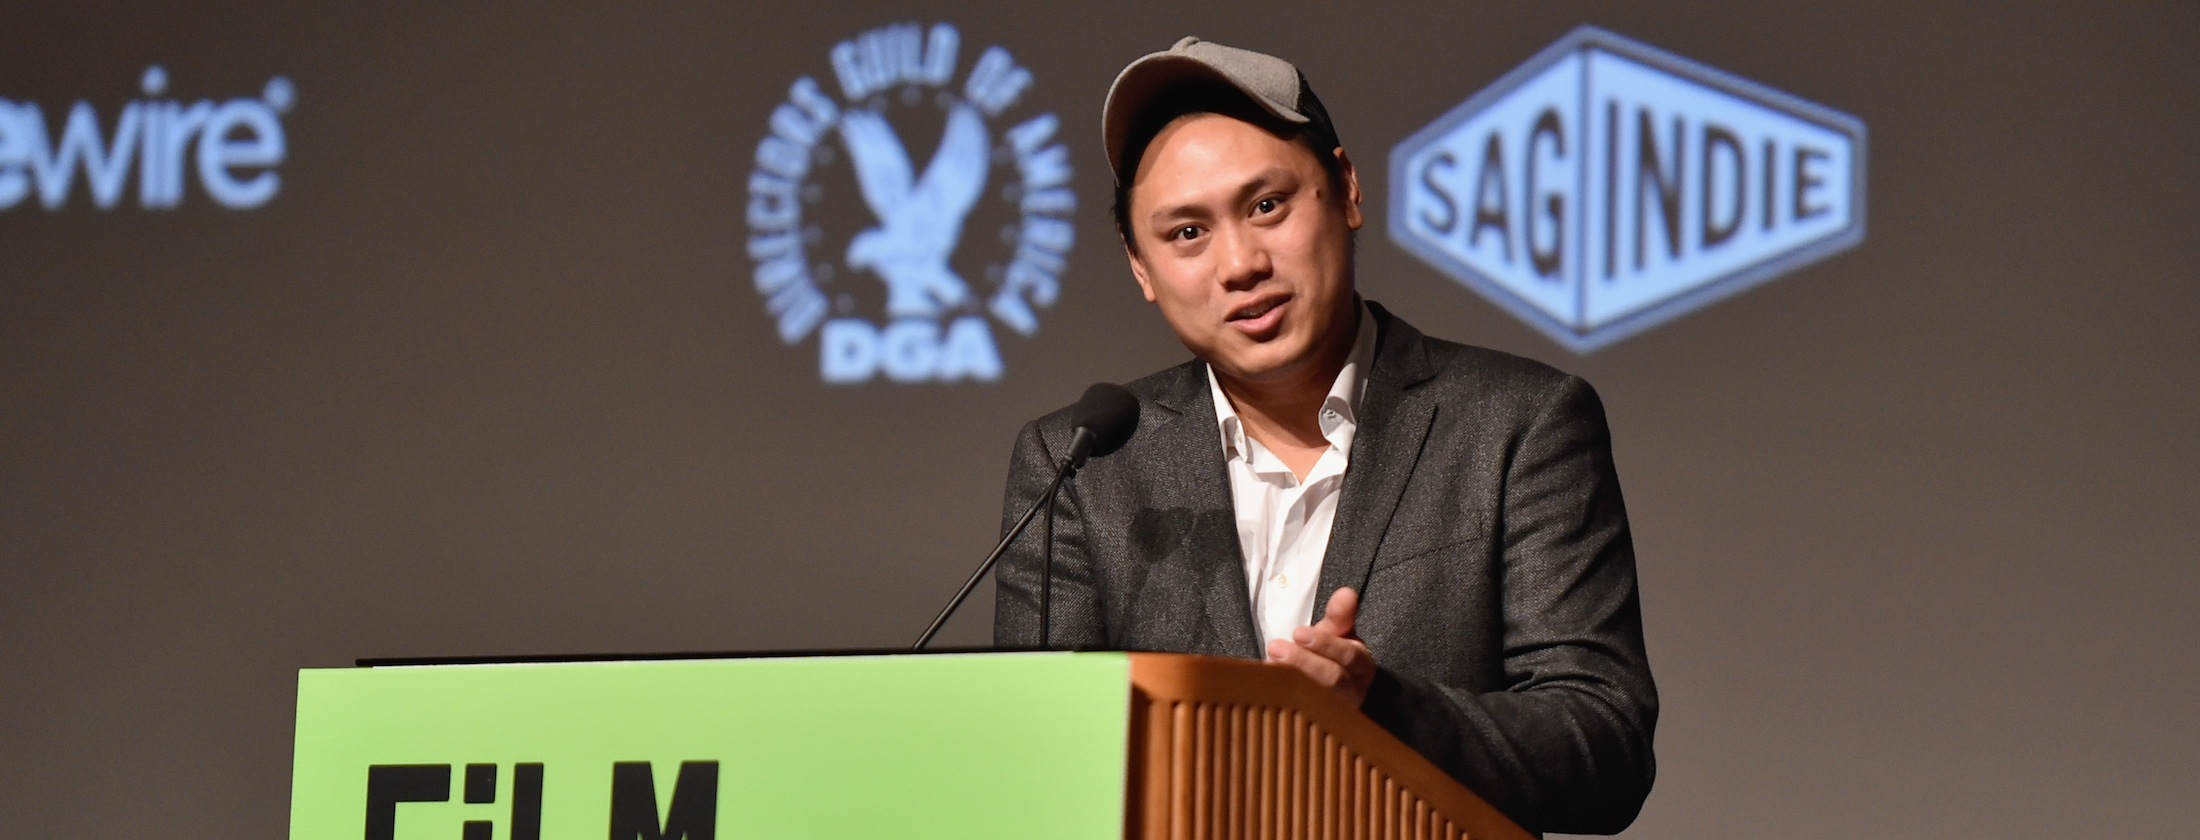 LOS ANGELES, CA - OCTOBER 24:  Director Jon M. Chu speaks onstage during day 1 of the 11th Annual Film Independent Forum at DGA Theater on October 24, 2015 in Los Angeles, California.  (Photo by Alberto E. Rodriguez/WireImage)